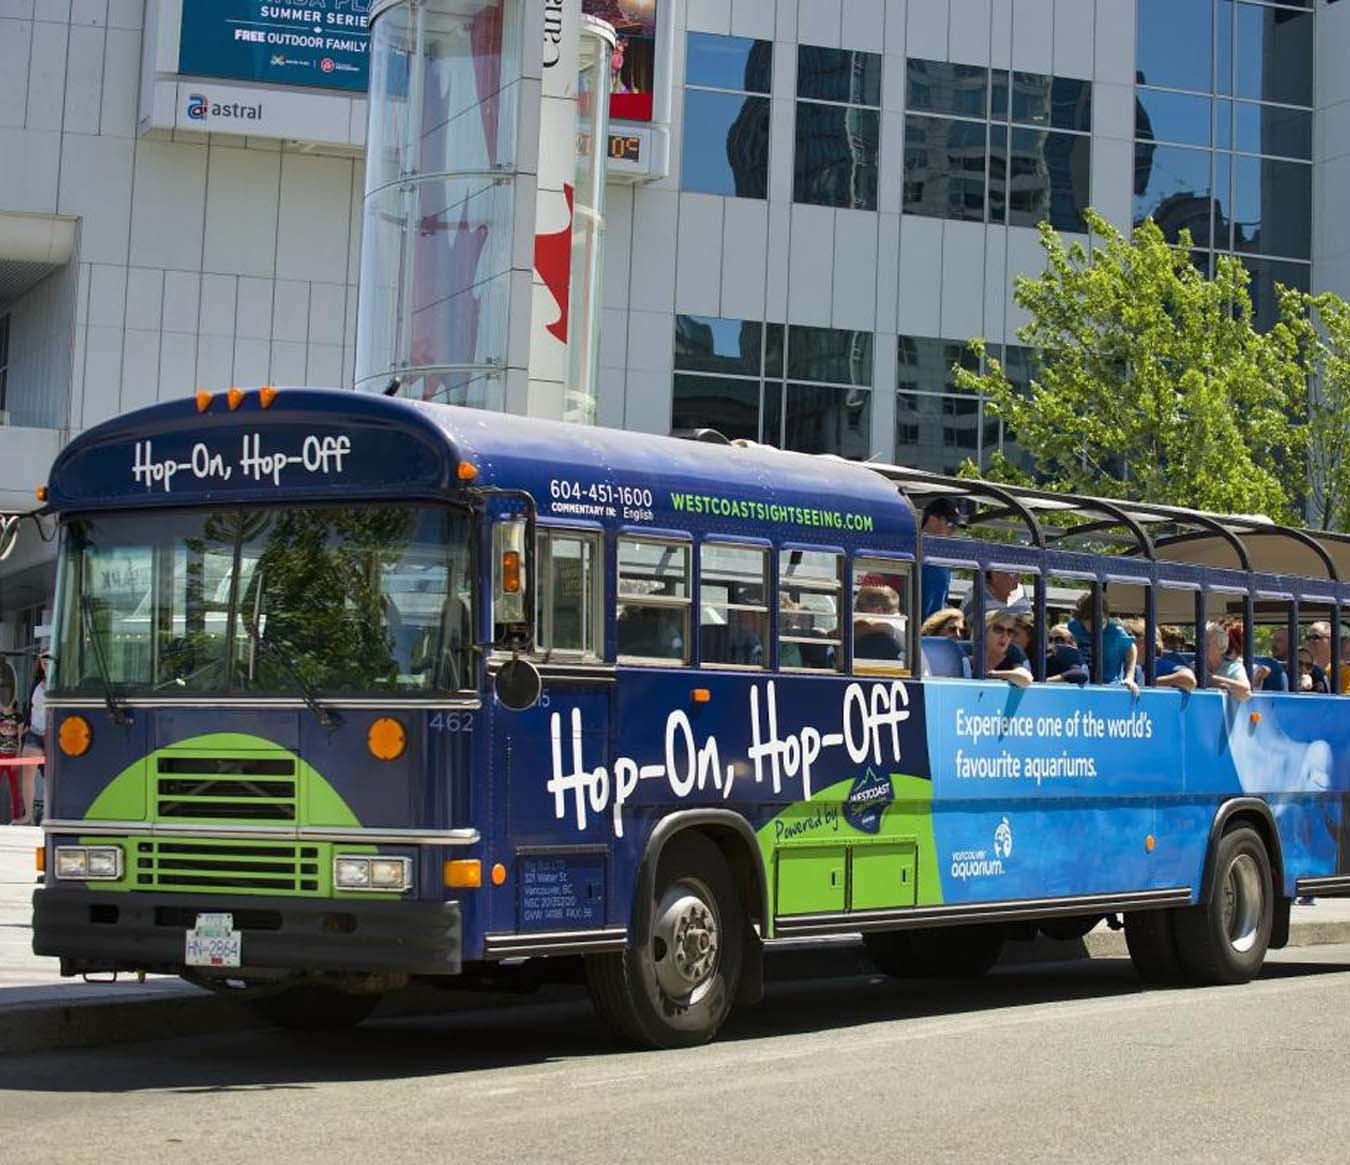 Things to Do in Vancouver - Hop-On Hop-Off Vancouver City Tour